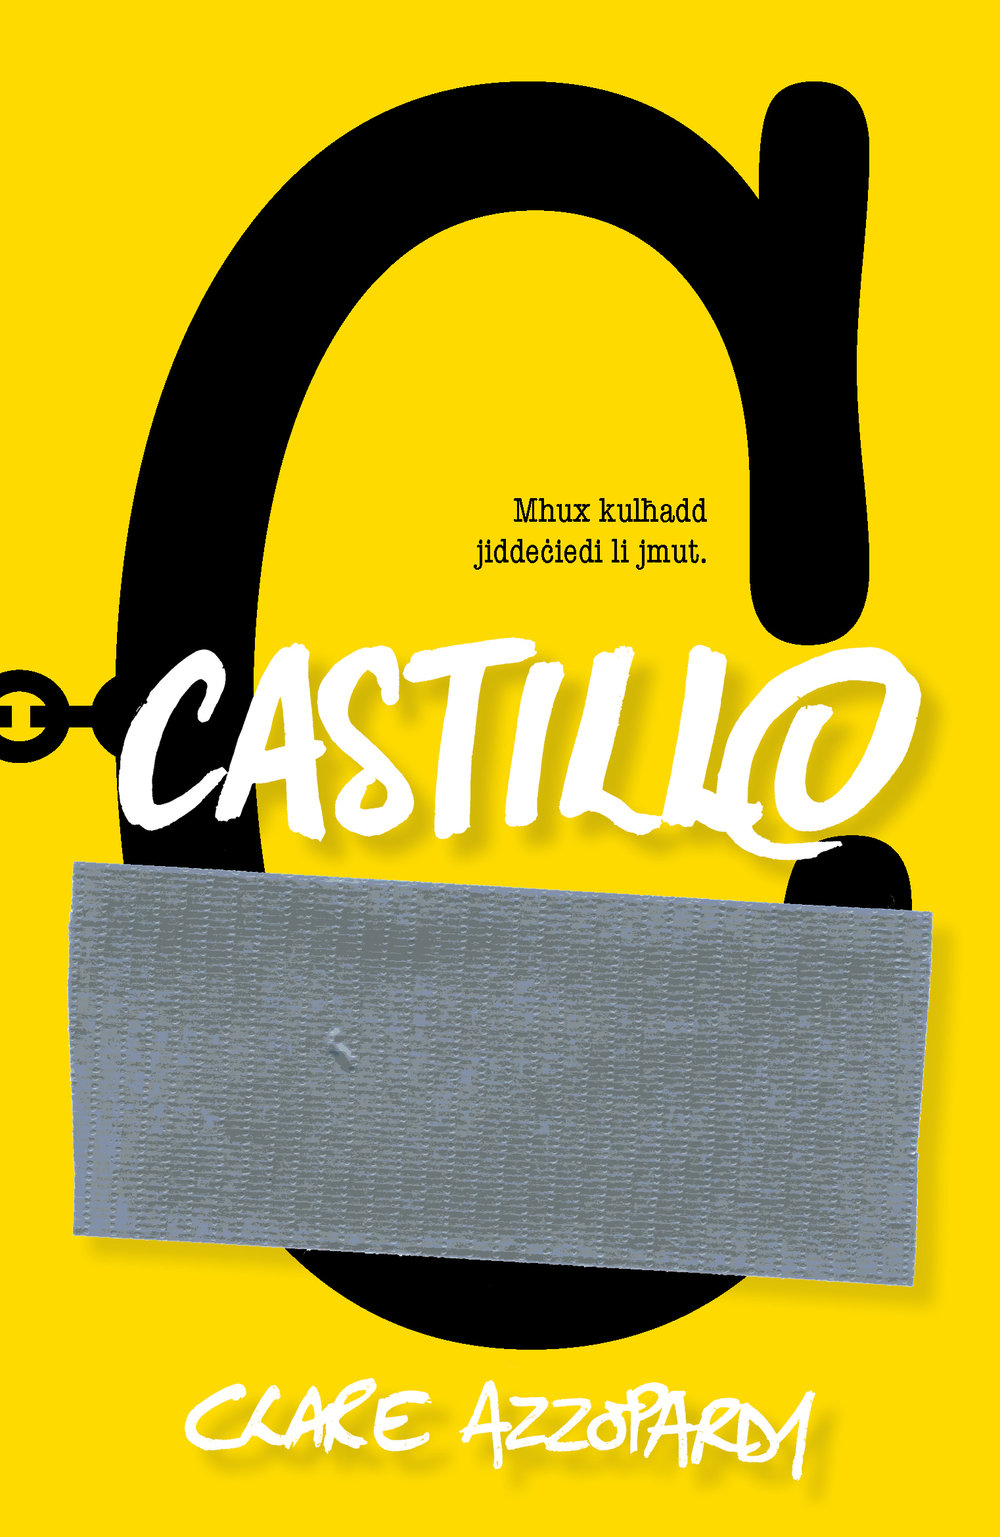 castillo cover for pr.jpg